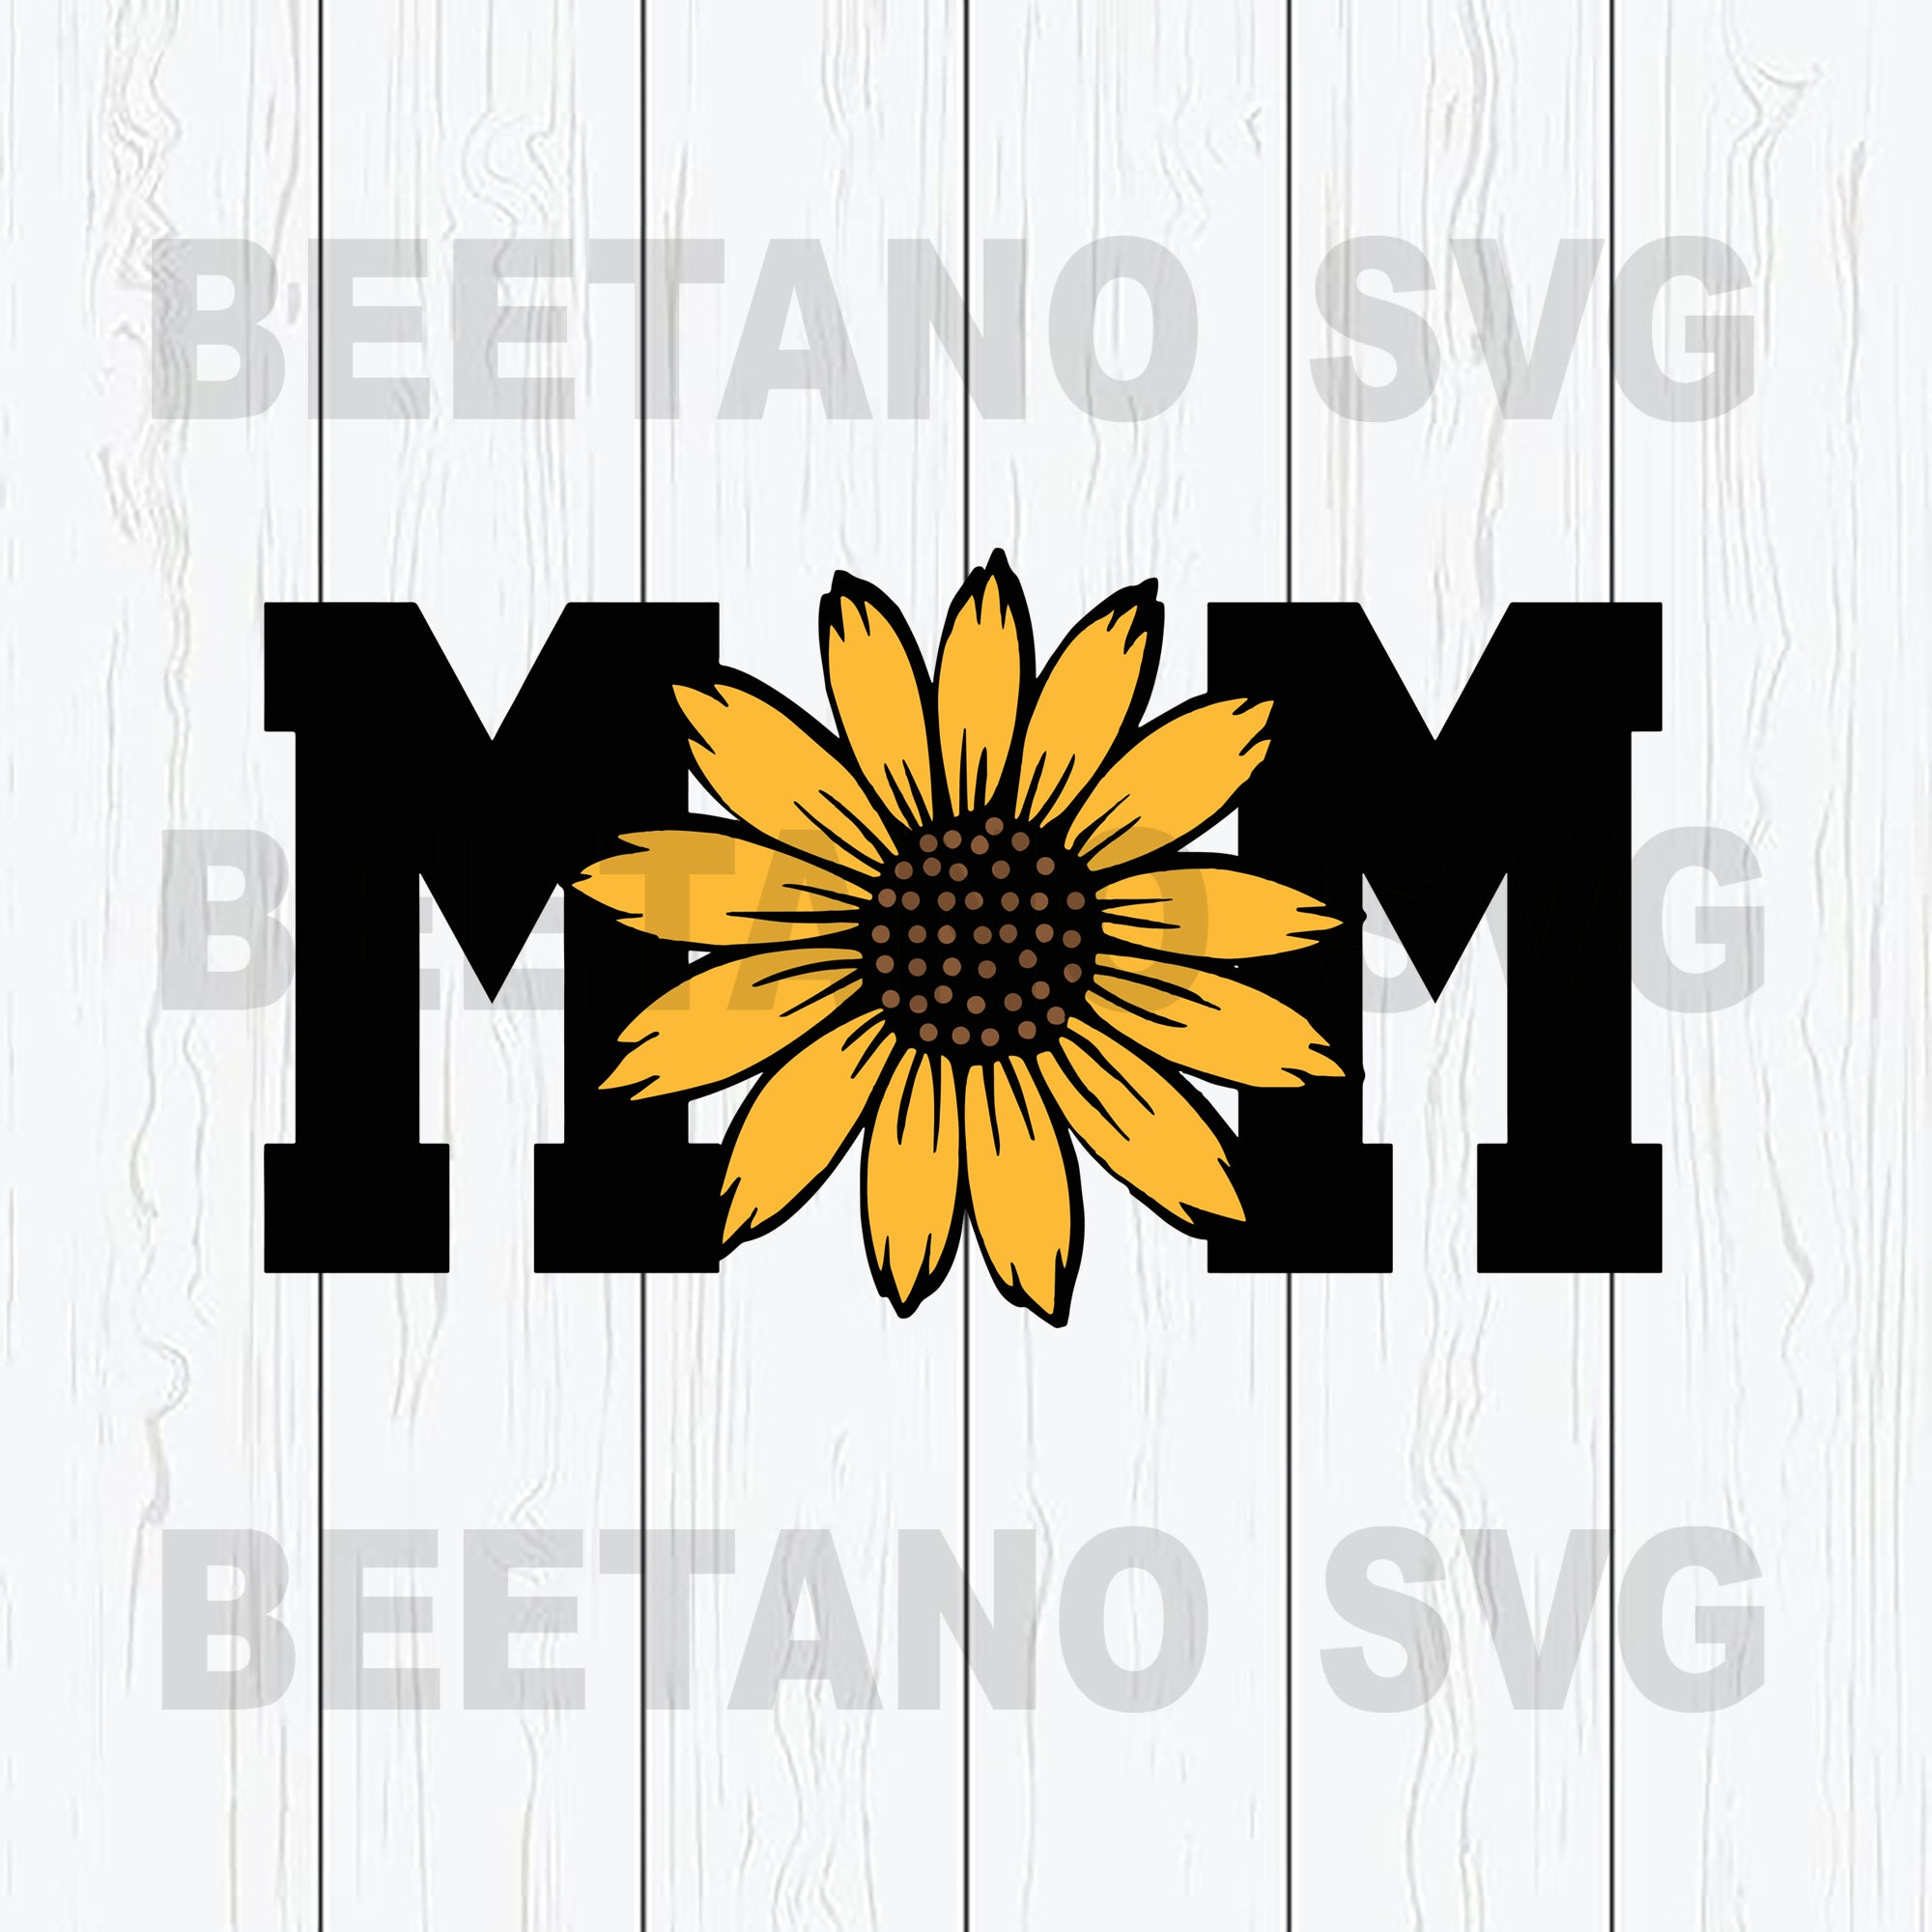 Mom Svg, Sunflower Mom Svg Files, Happy Mother's Day Svg, Sunflower Svg, Mom Cricut Files